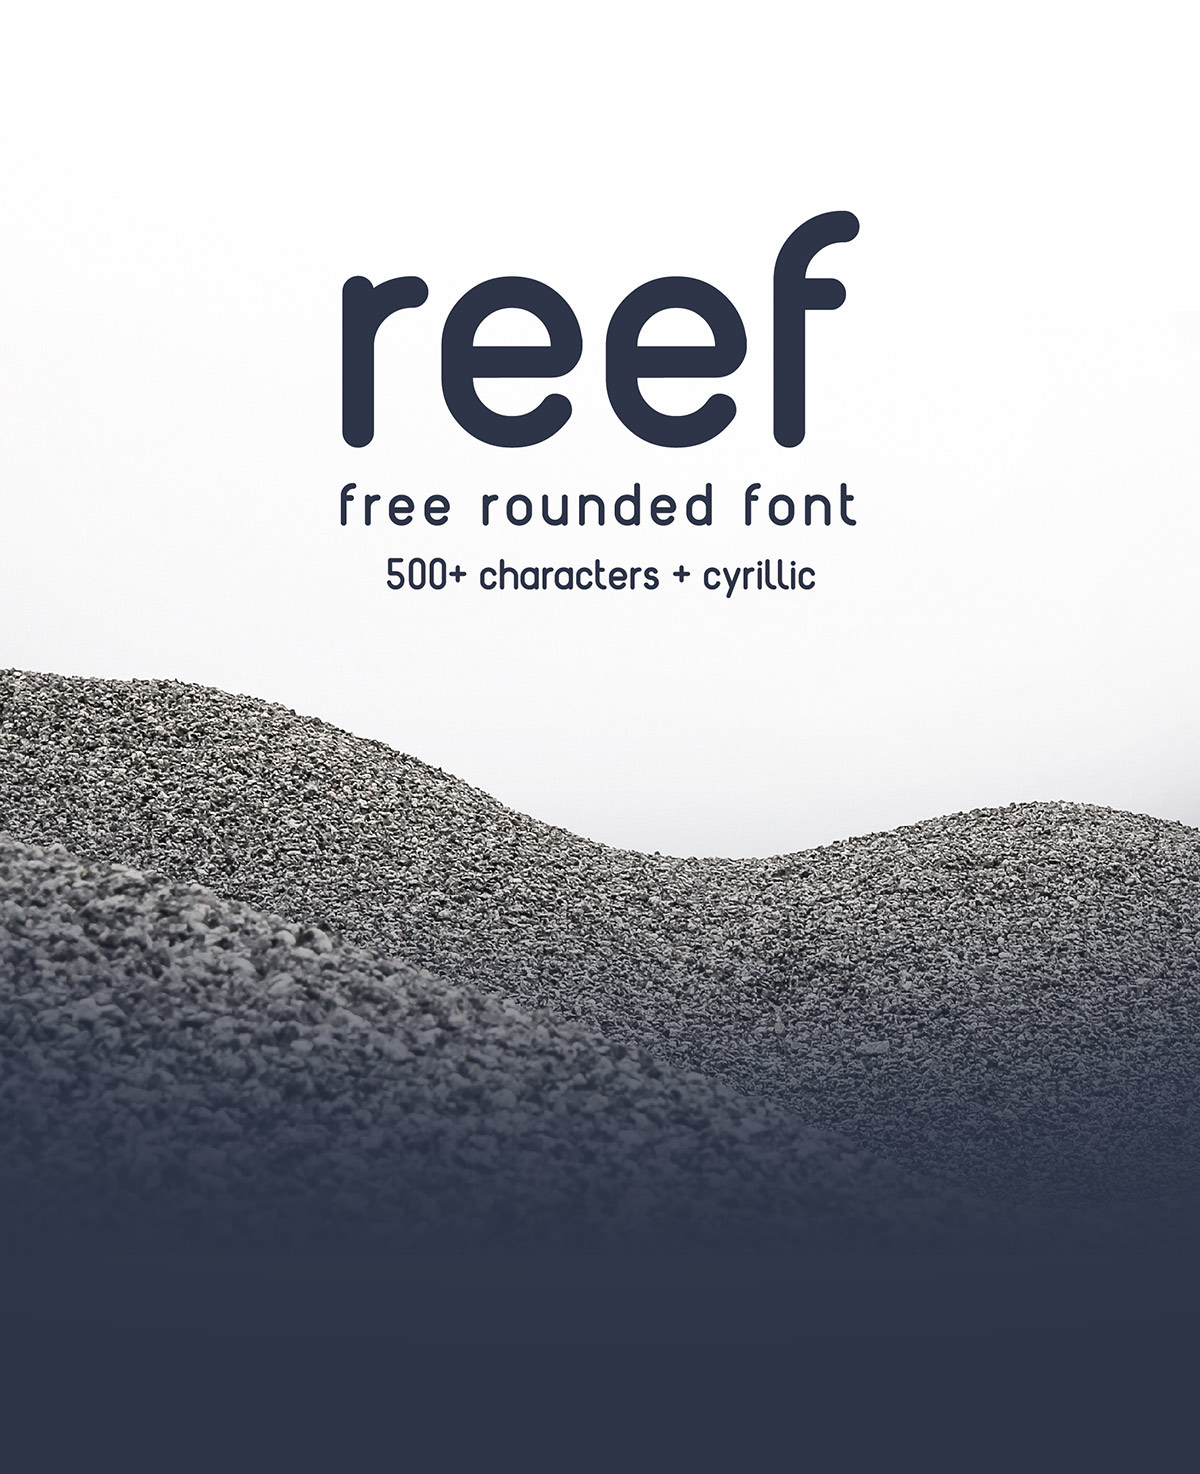 download reef rounded free font